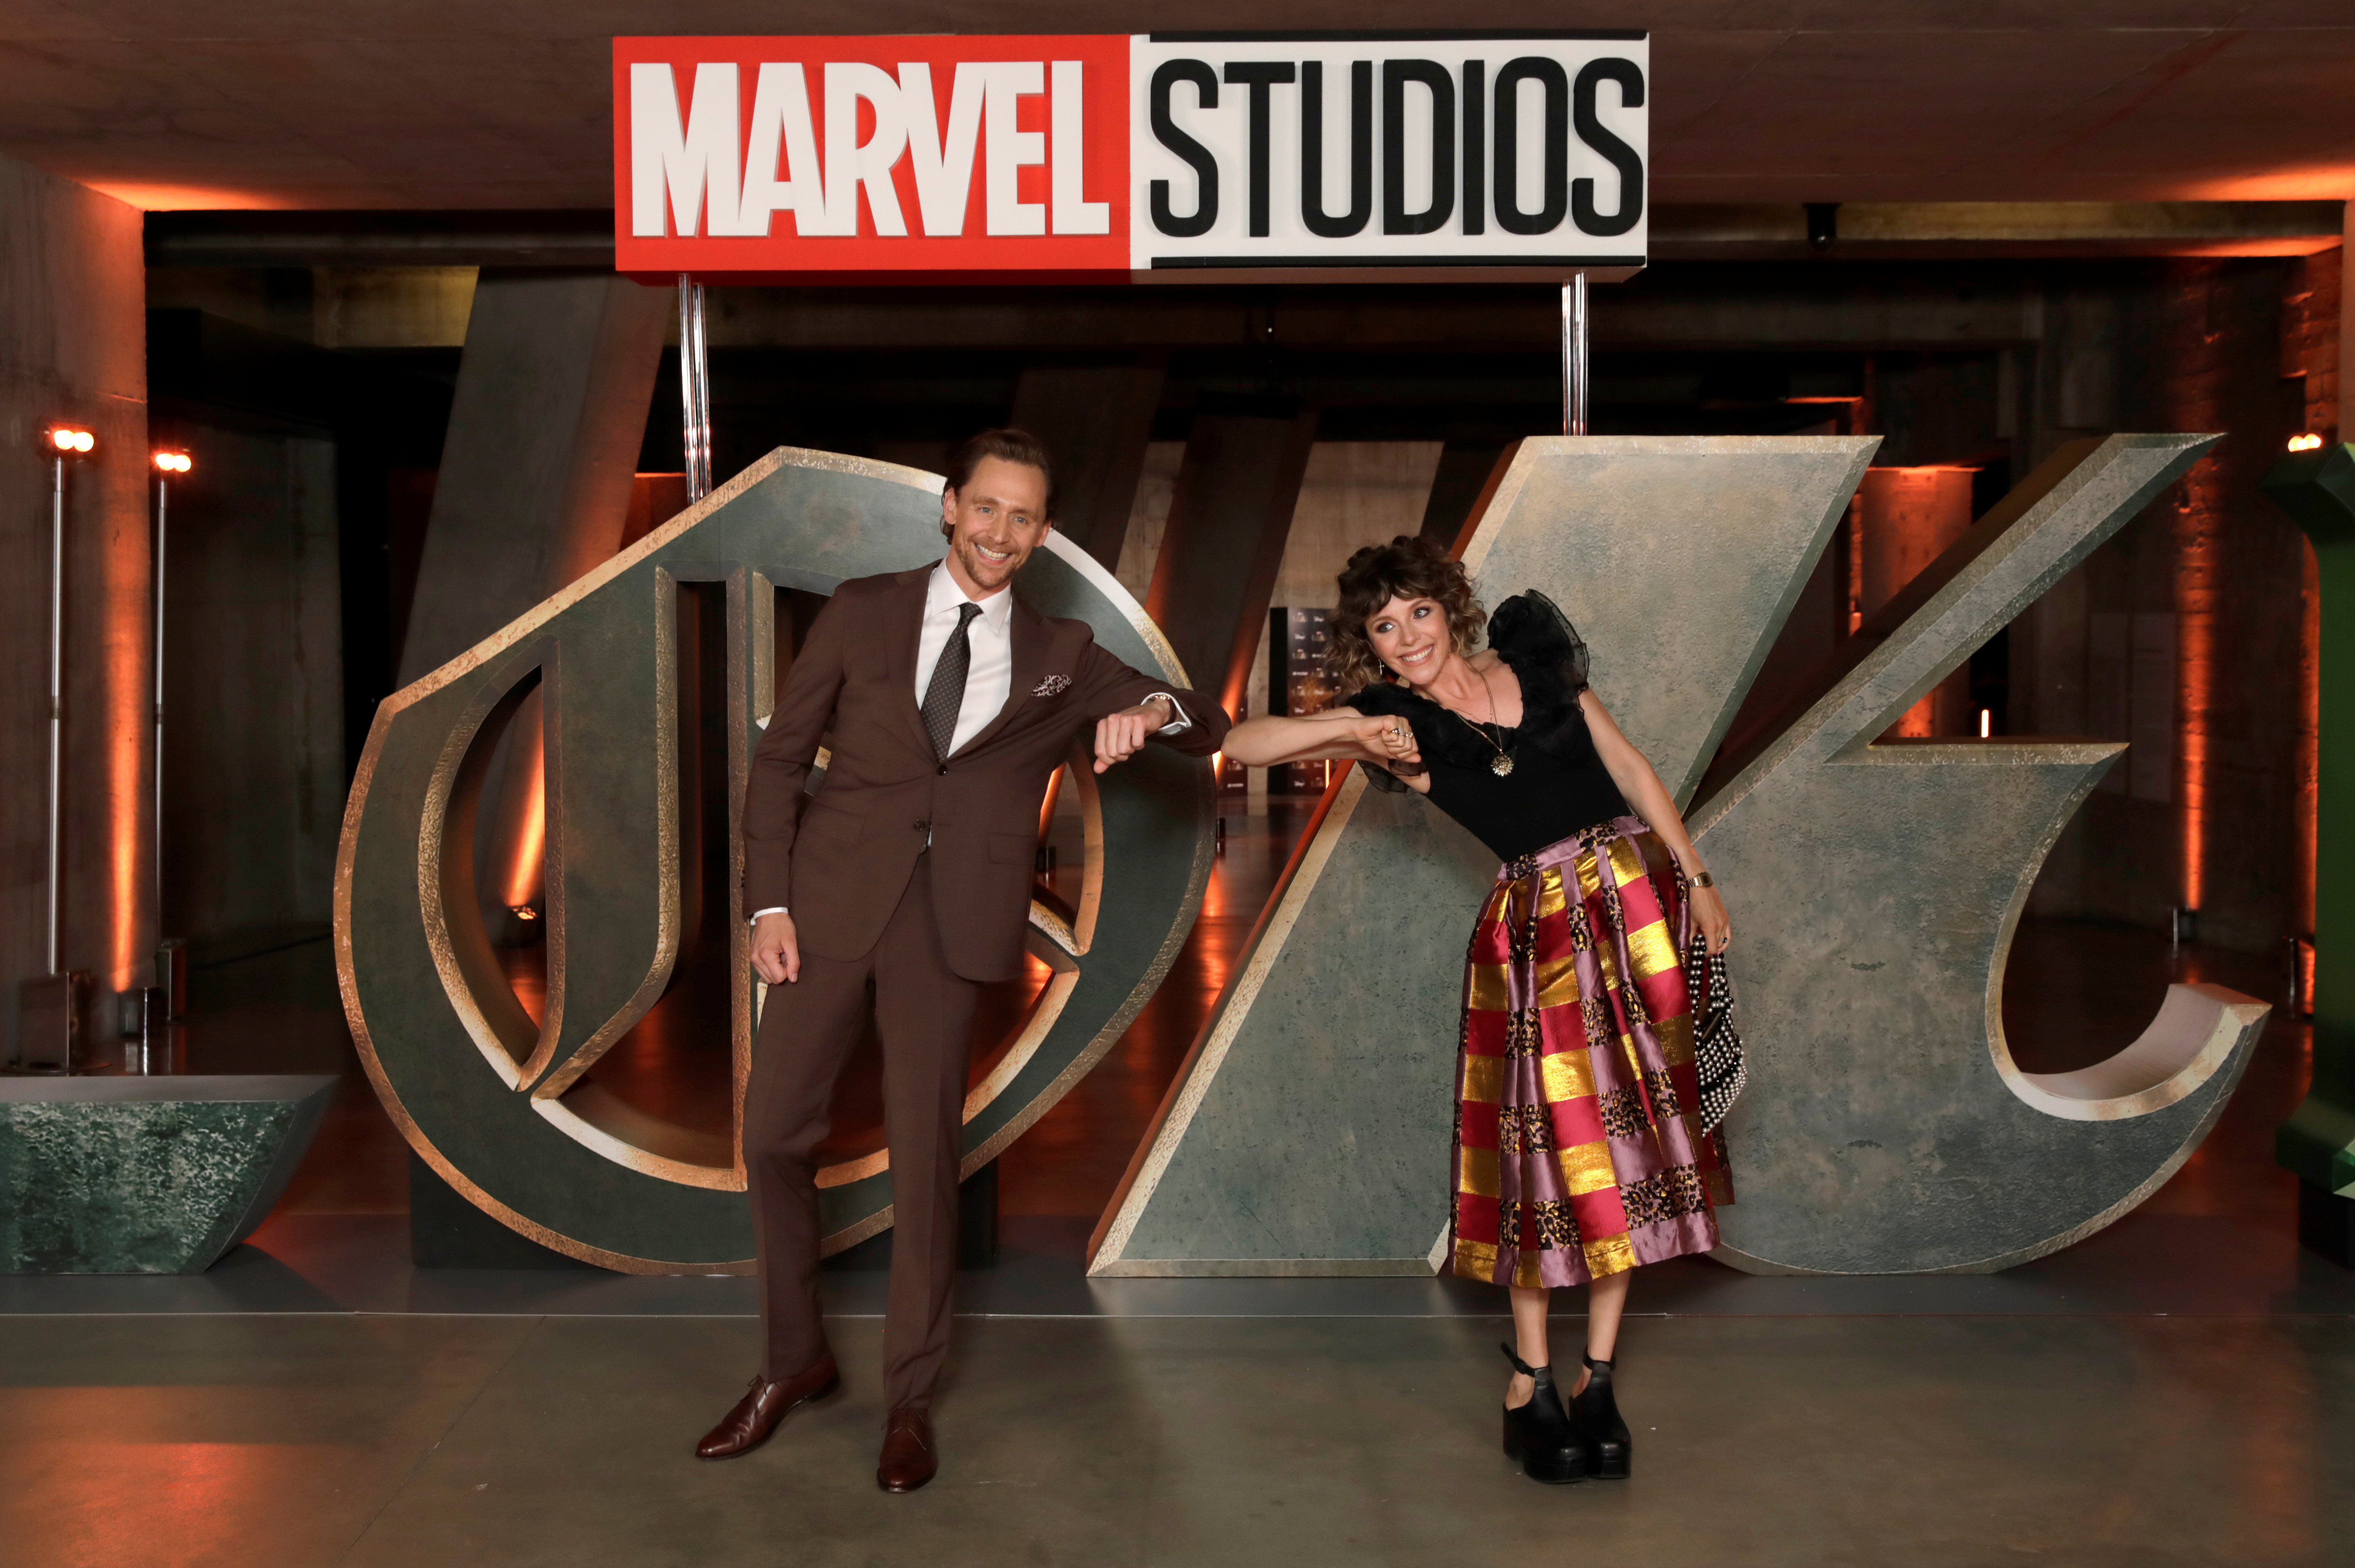 Tom Hiddleston and Sophia Di Martino attend the Special Screening of Marvel Studios' series